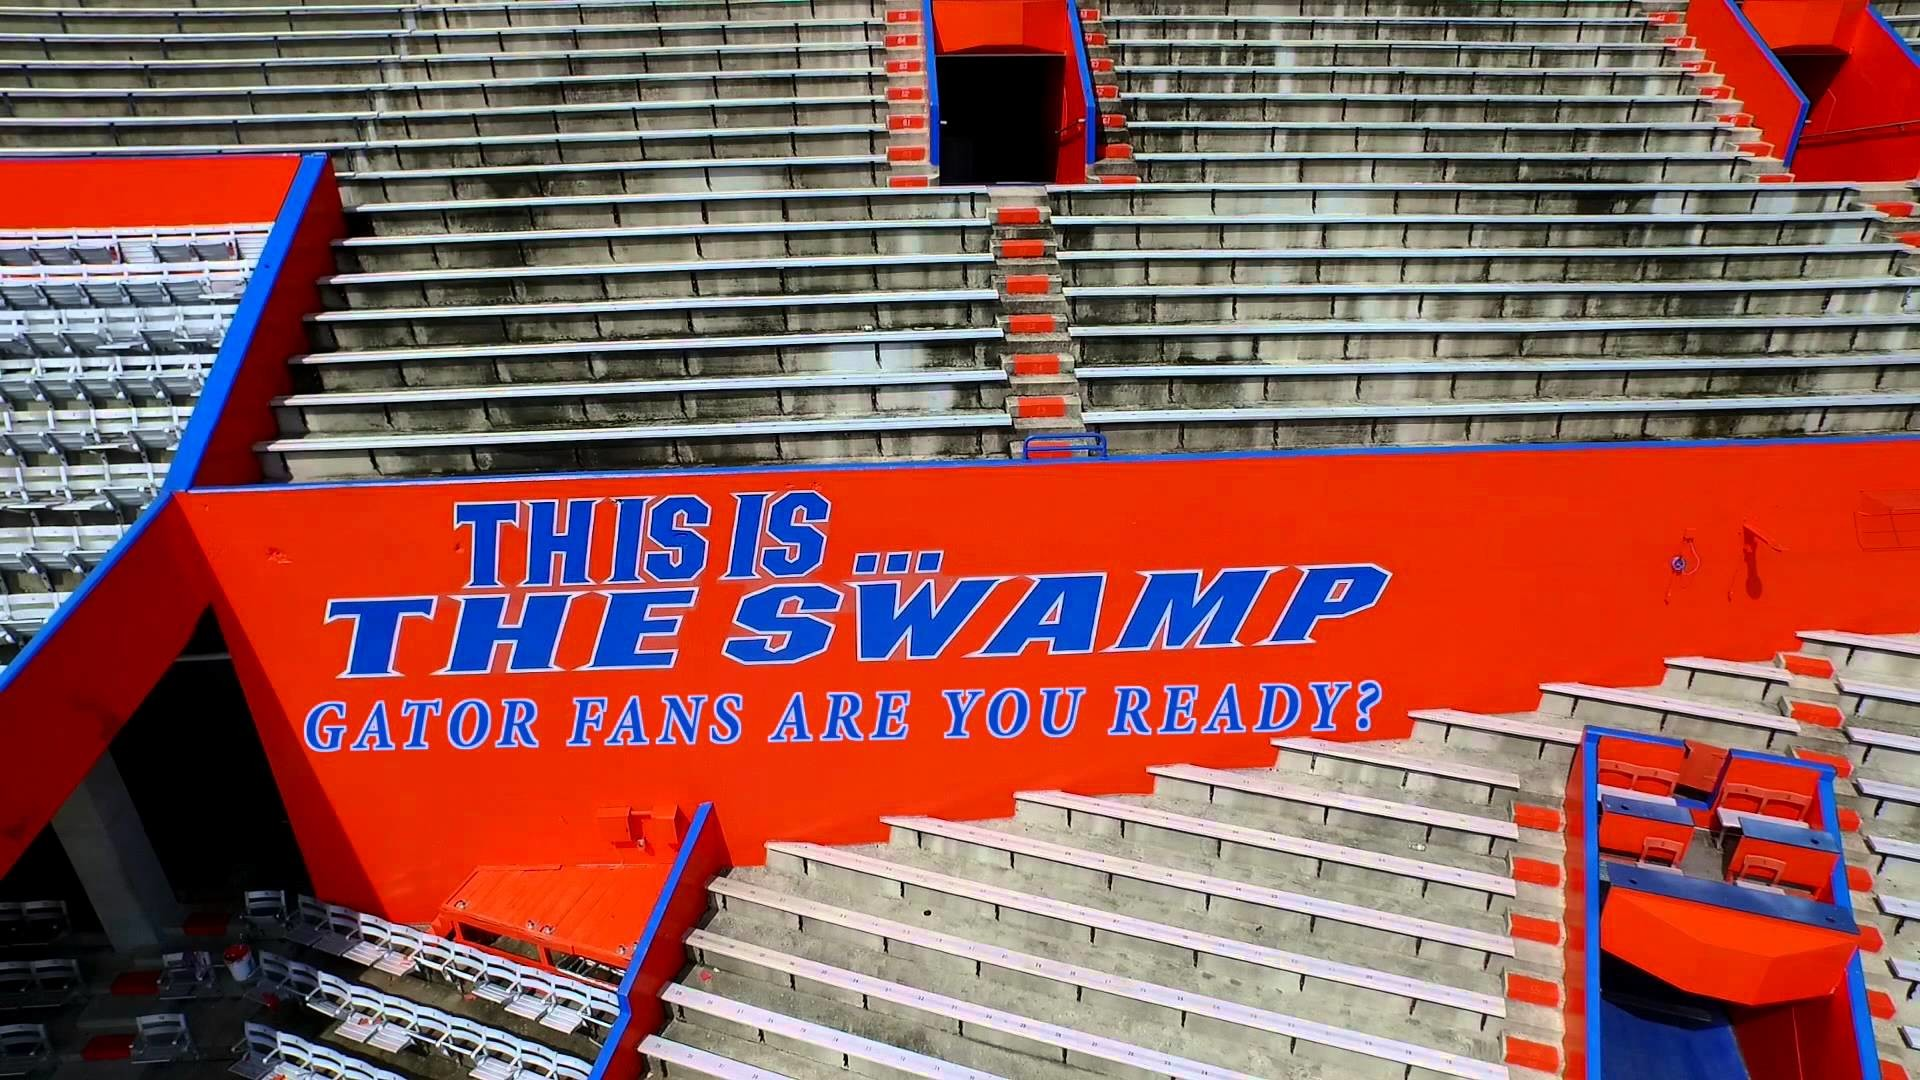 This Is The Swamp – University of Florida Gator Football Time